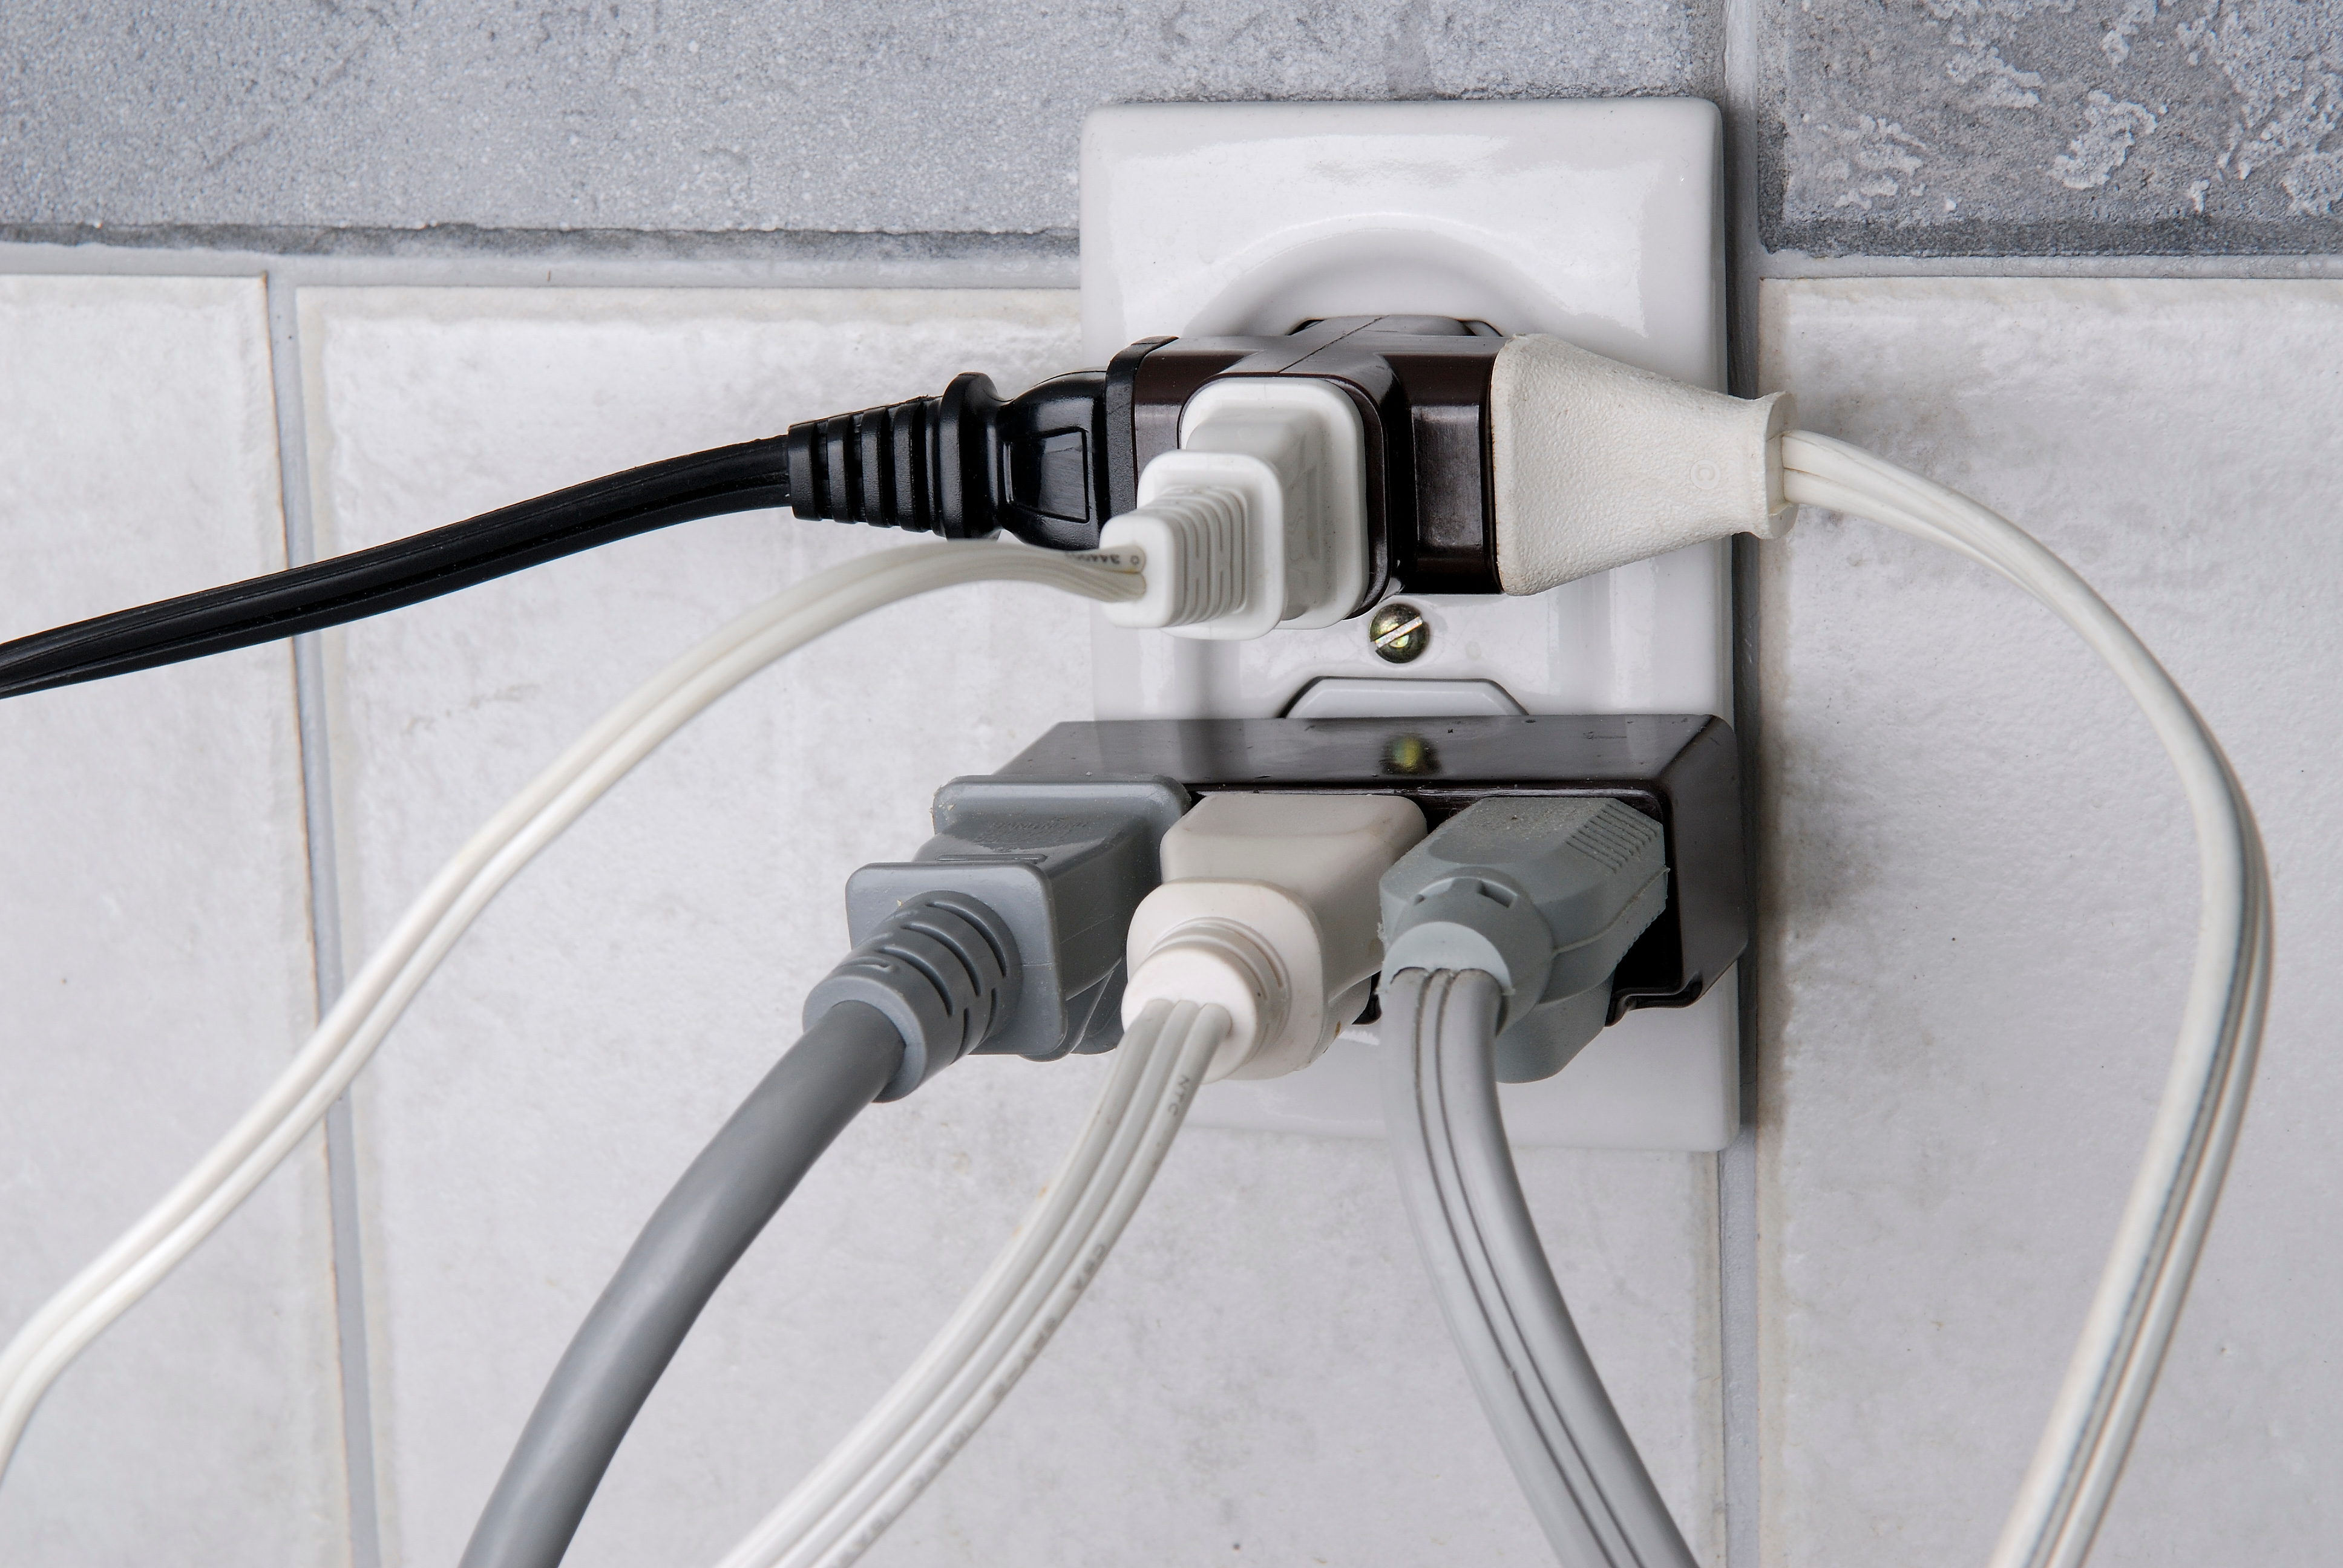 To eliminate a fire hazard, power outlets should not be overloaded, and surge protectors should be used when possible.